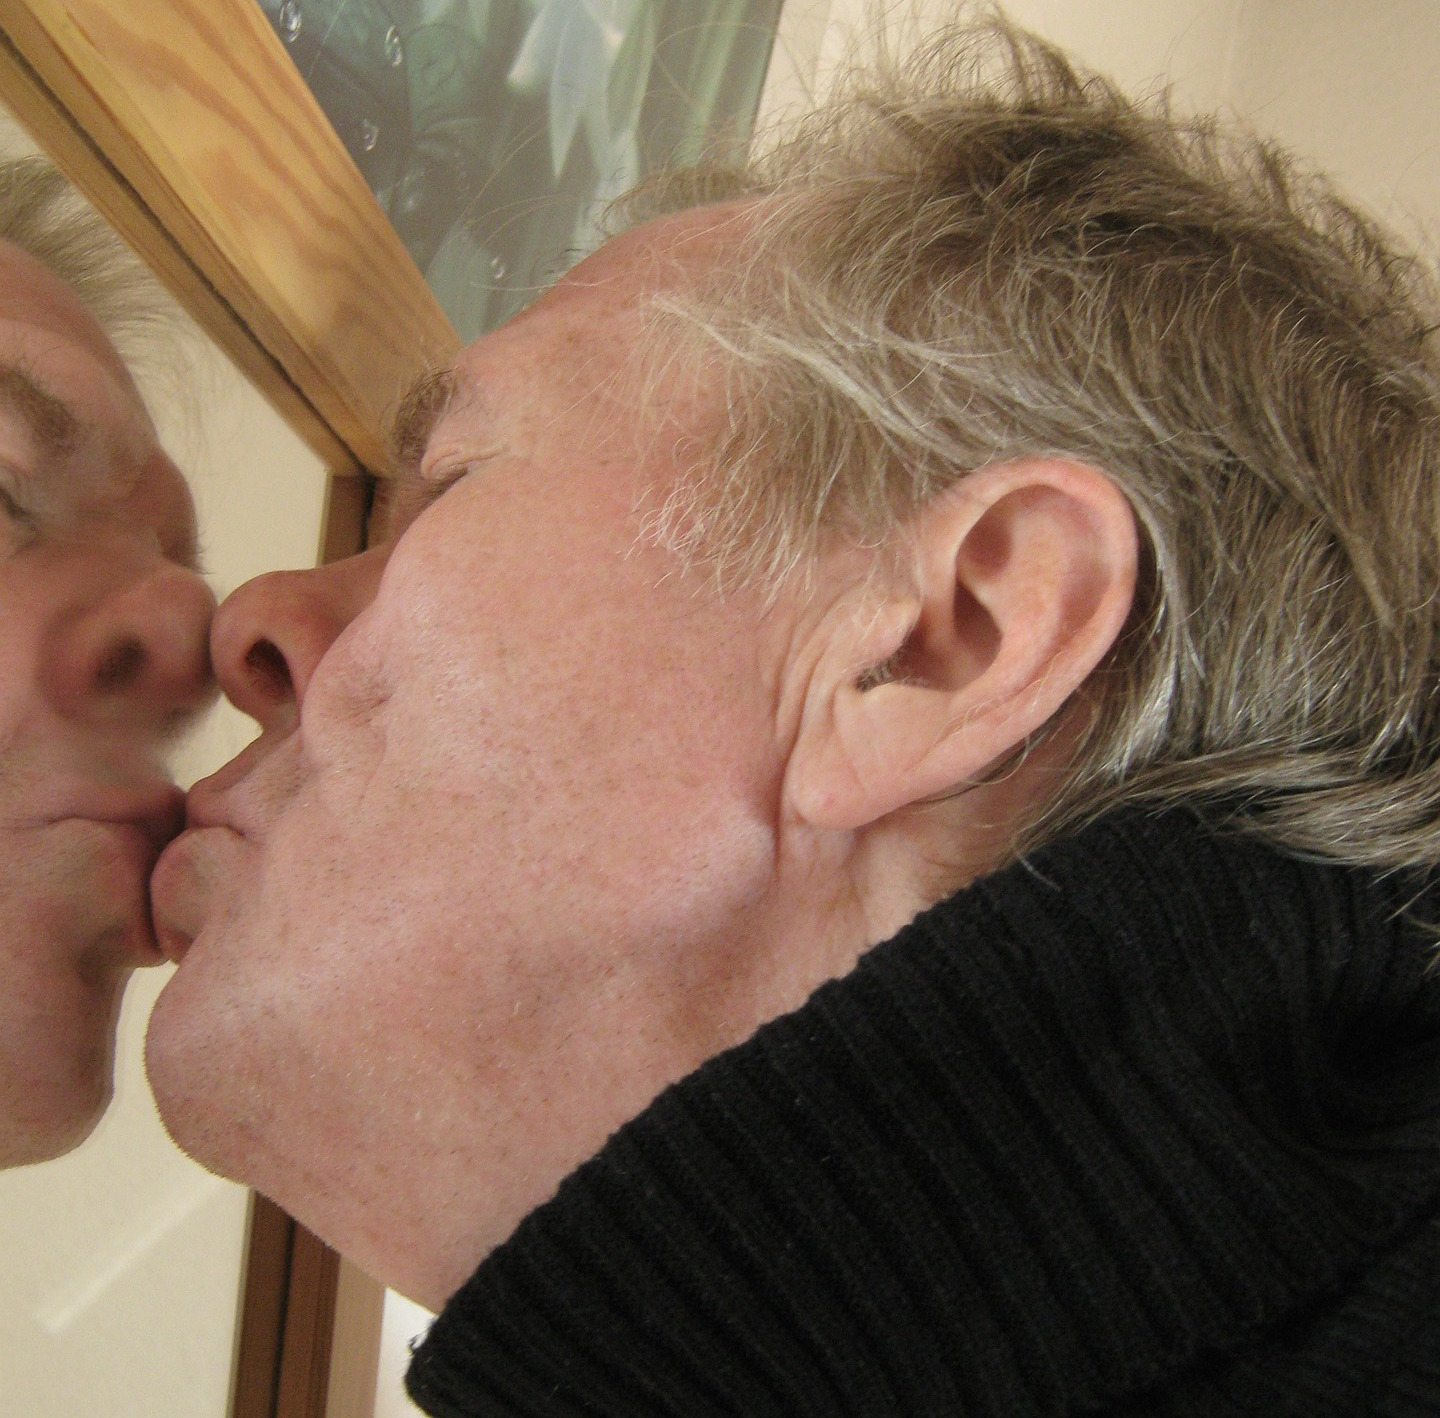 Grey-haired man kissing his reflection in the mirror